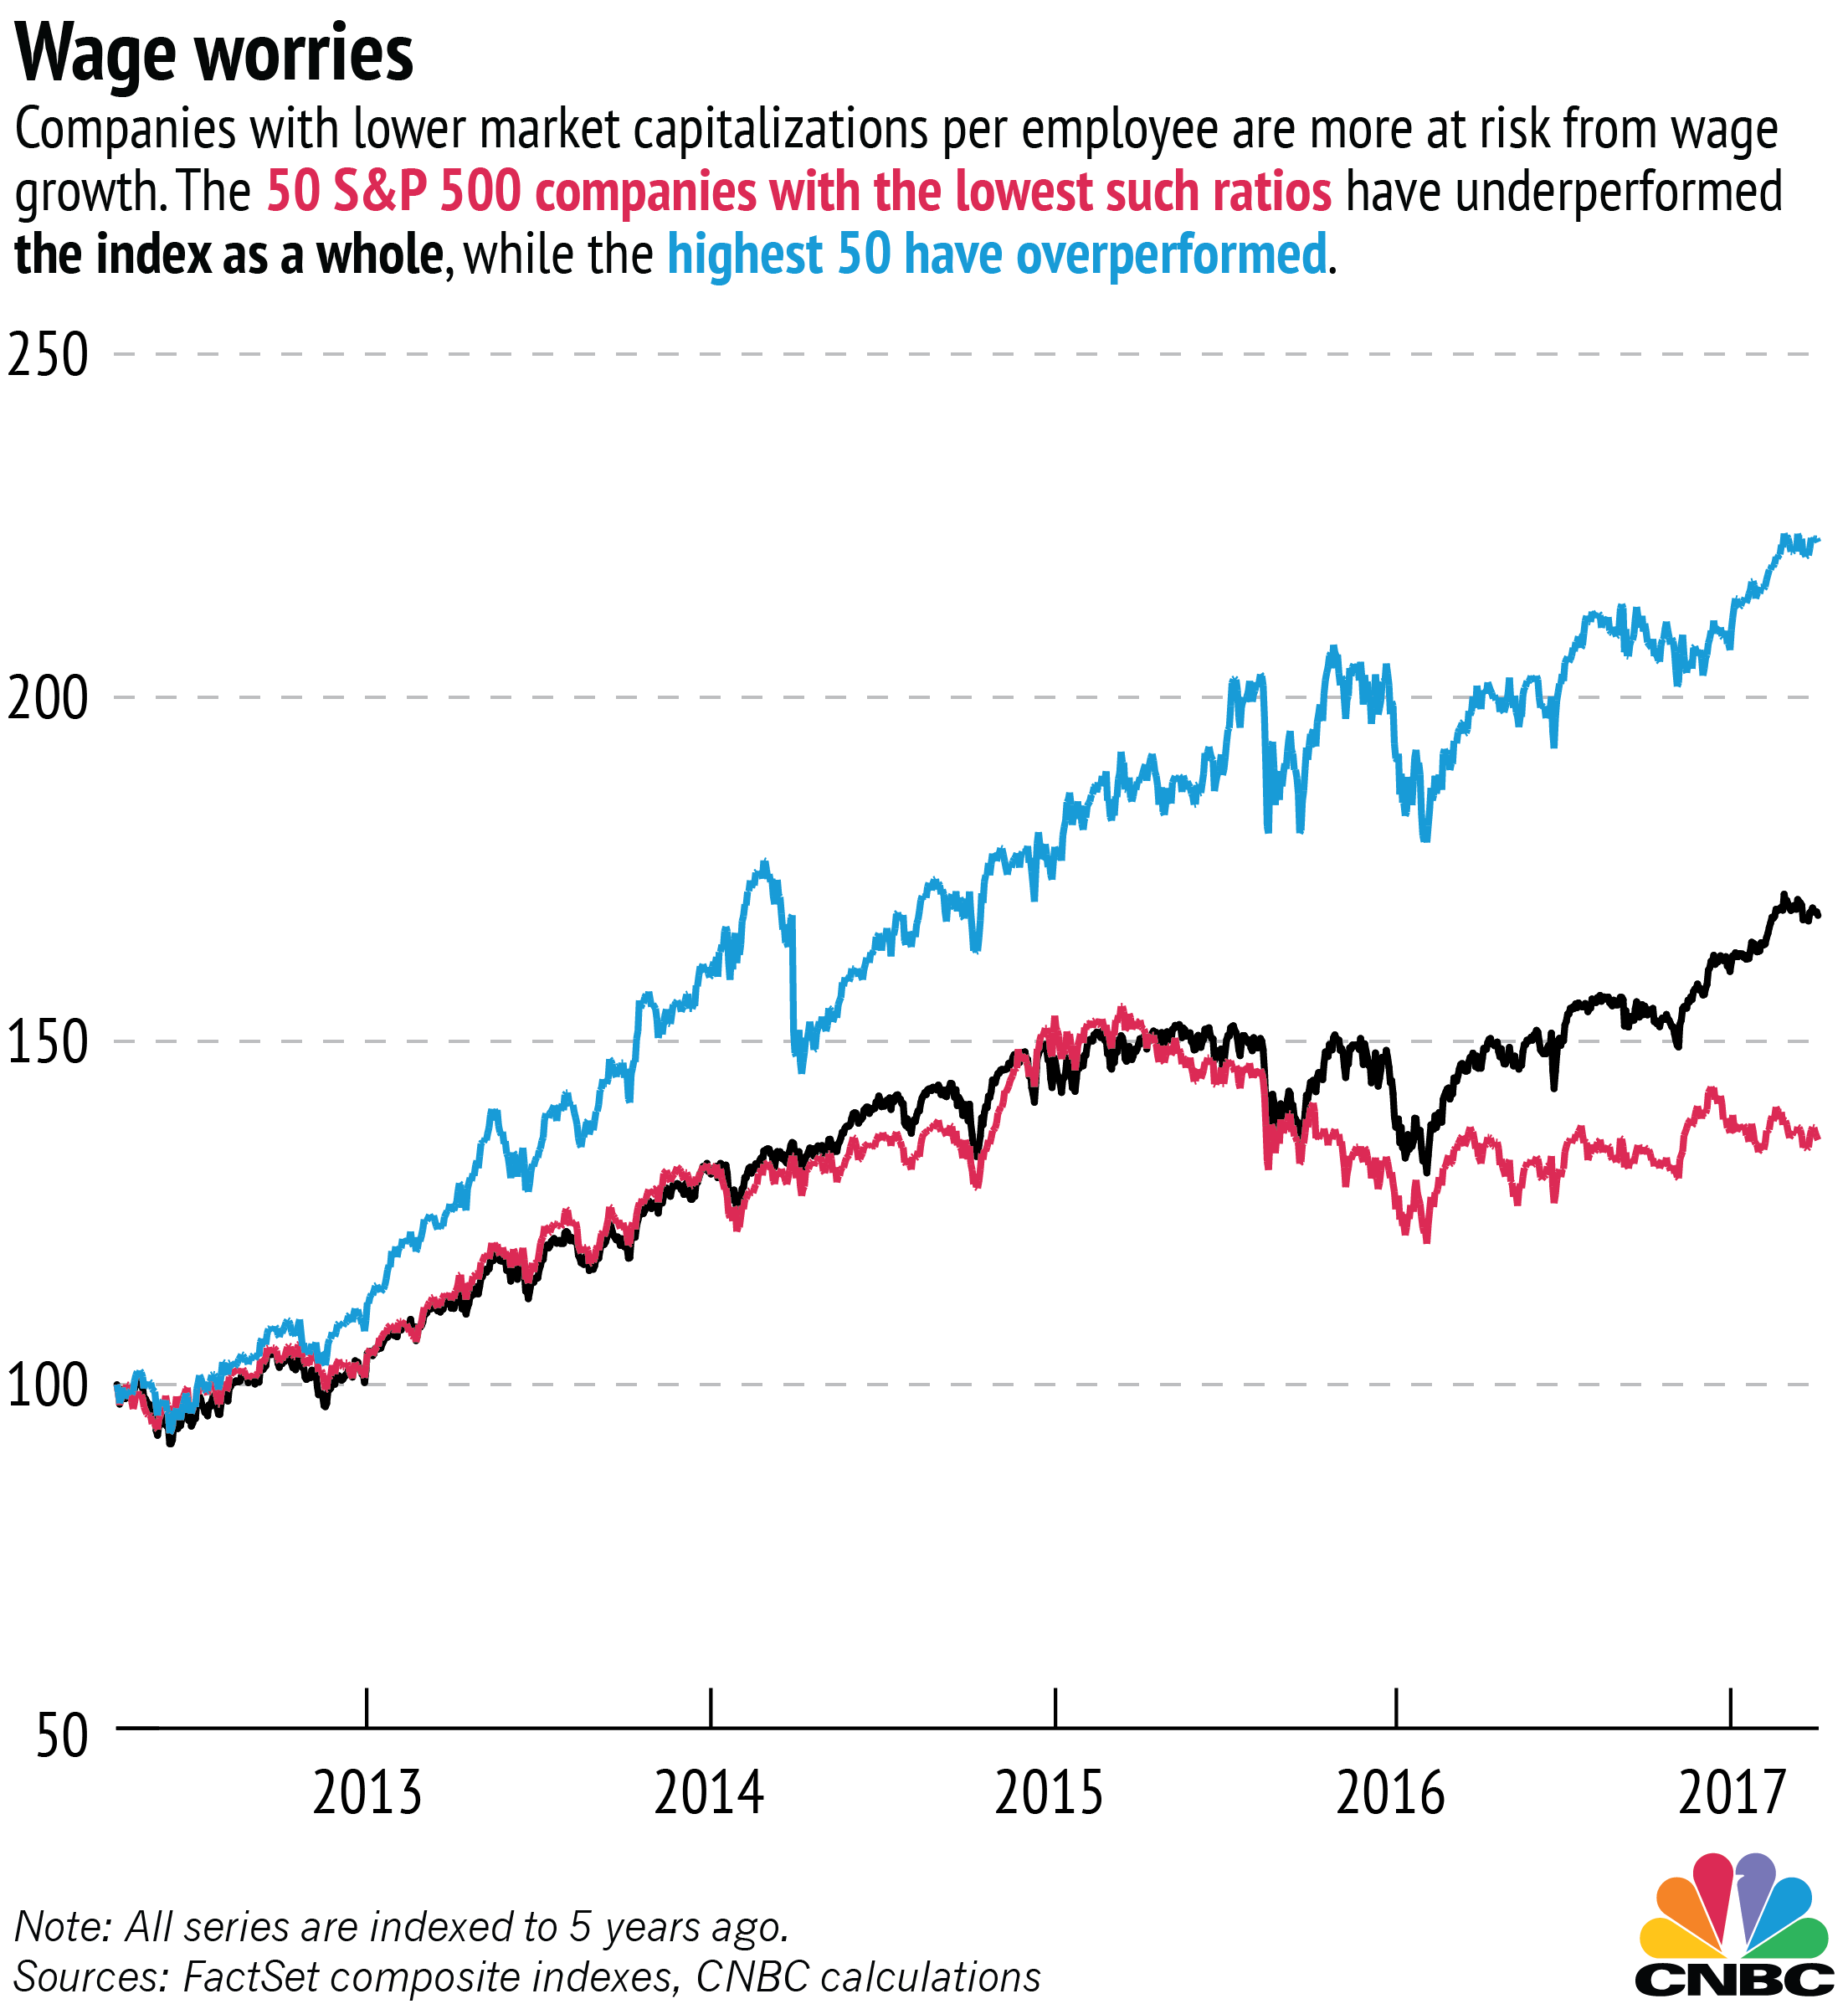 These companies should be worried about wage growth